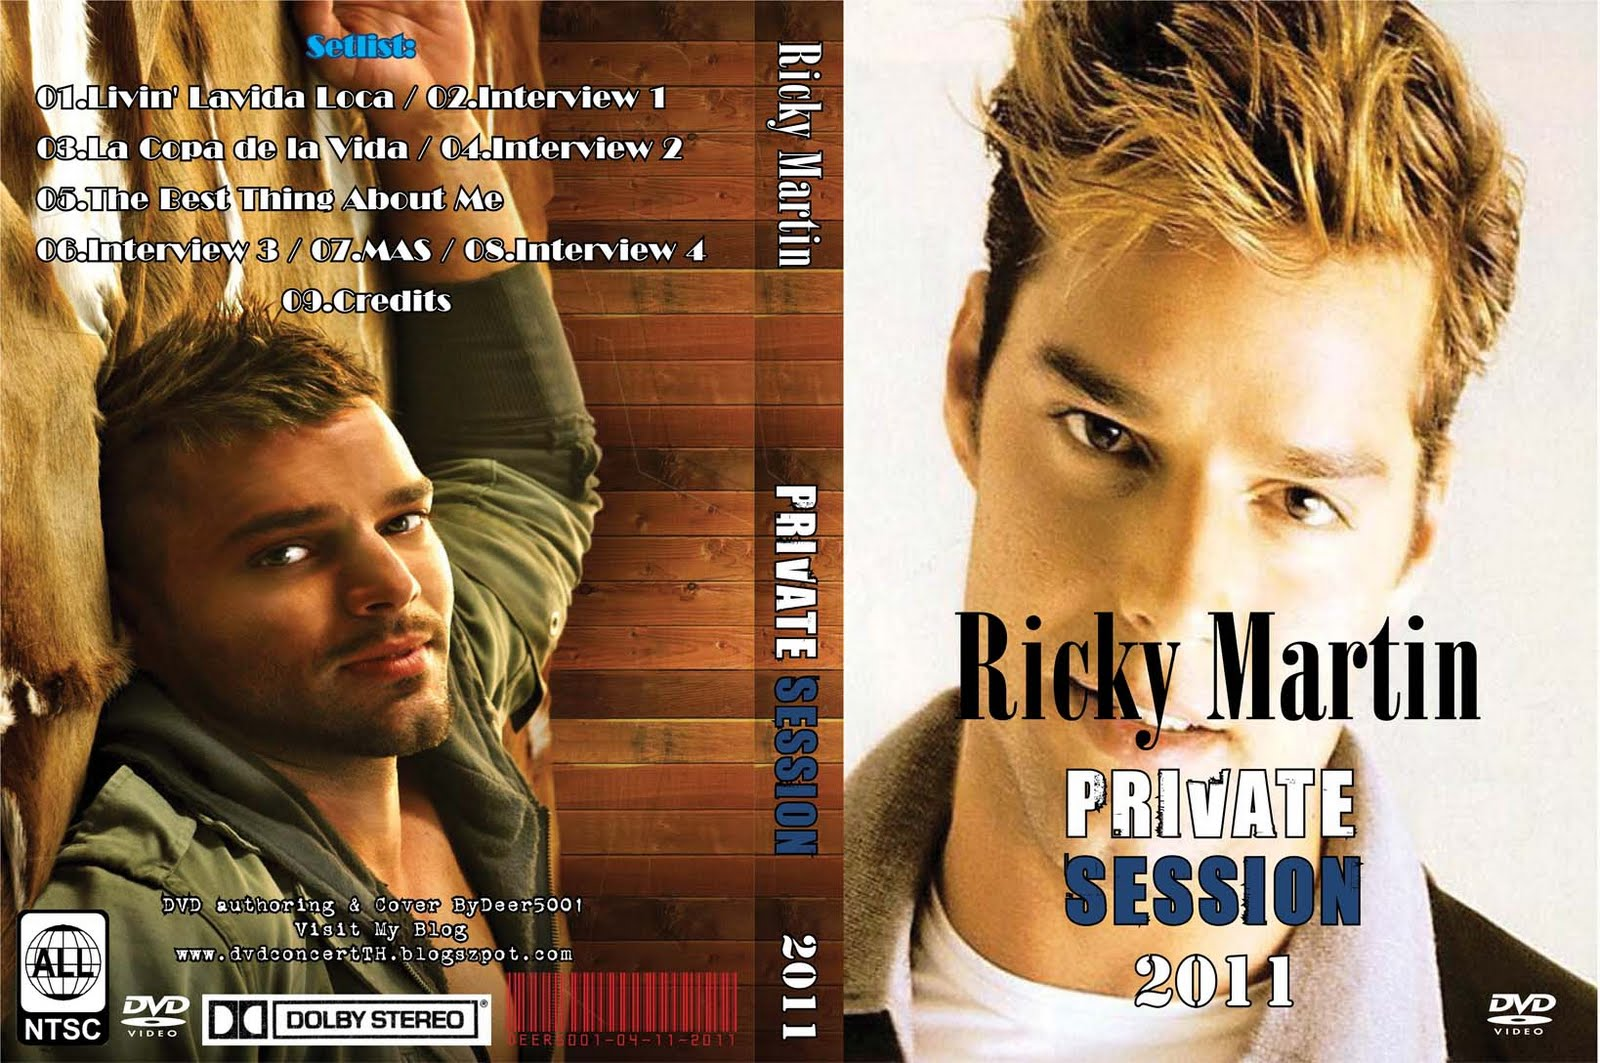 http://3.bp.blogspot.com/-Gi-BrUMxh2Y/TaWFoG_YIBI/AAAAAAAACfE/MEa-0v5SP-I/s1600/DVD+Cover+Low+Quality+-+Ricky+Martin+-+Private+Sessions+-+02-13-2011.jpg